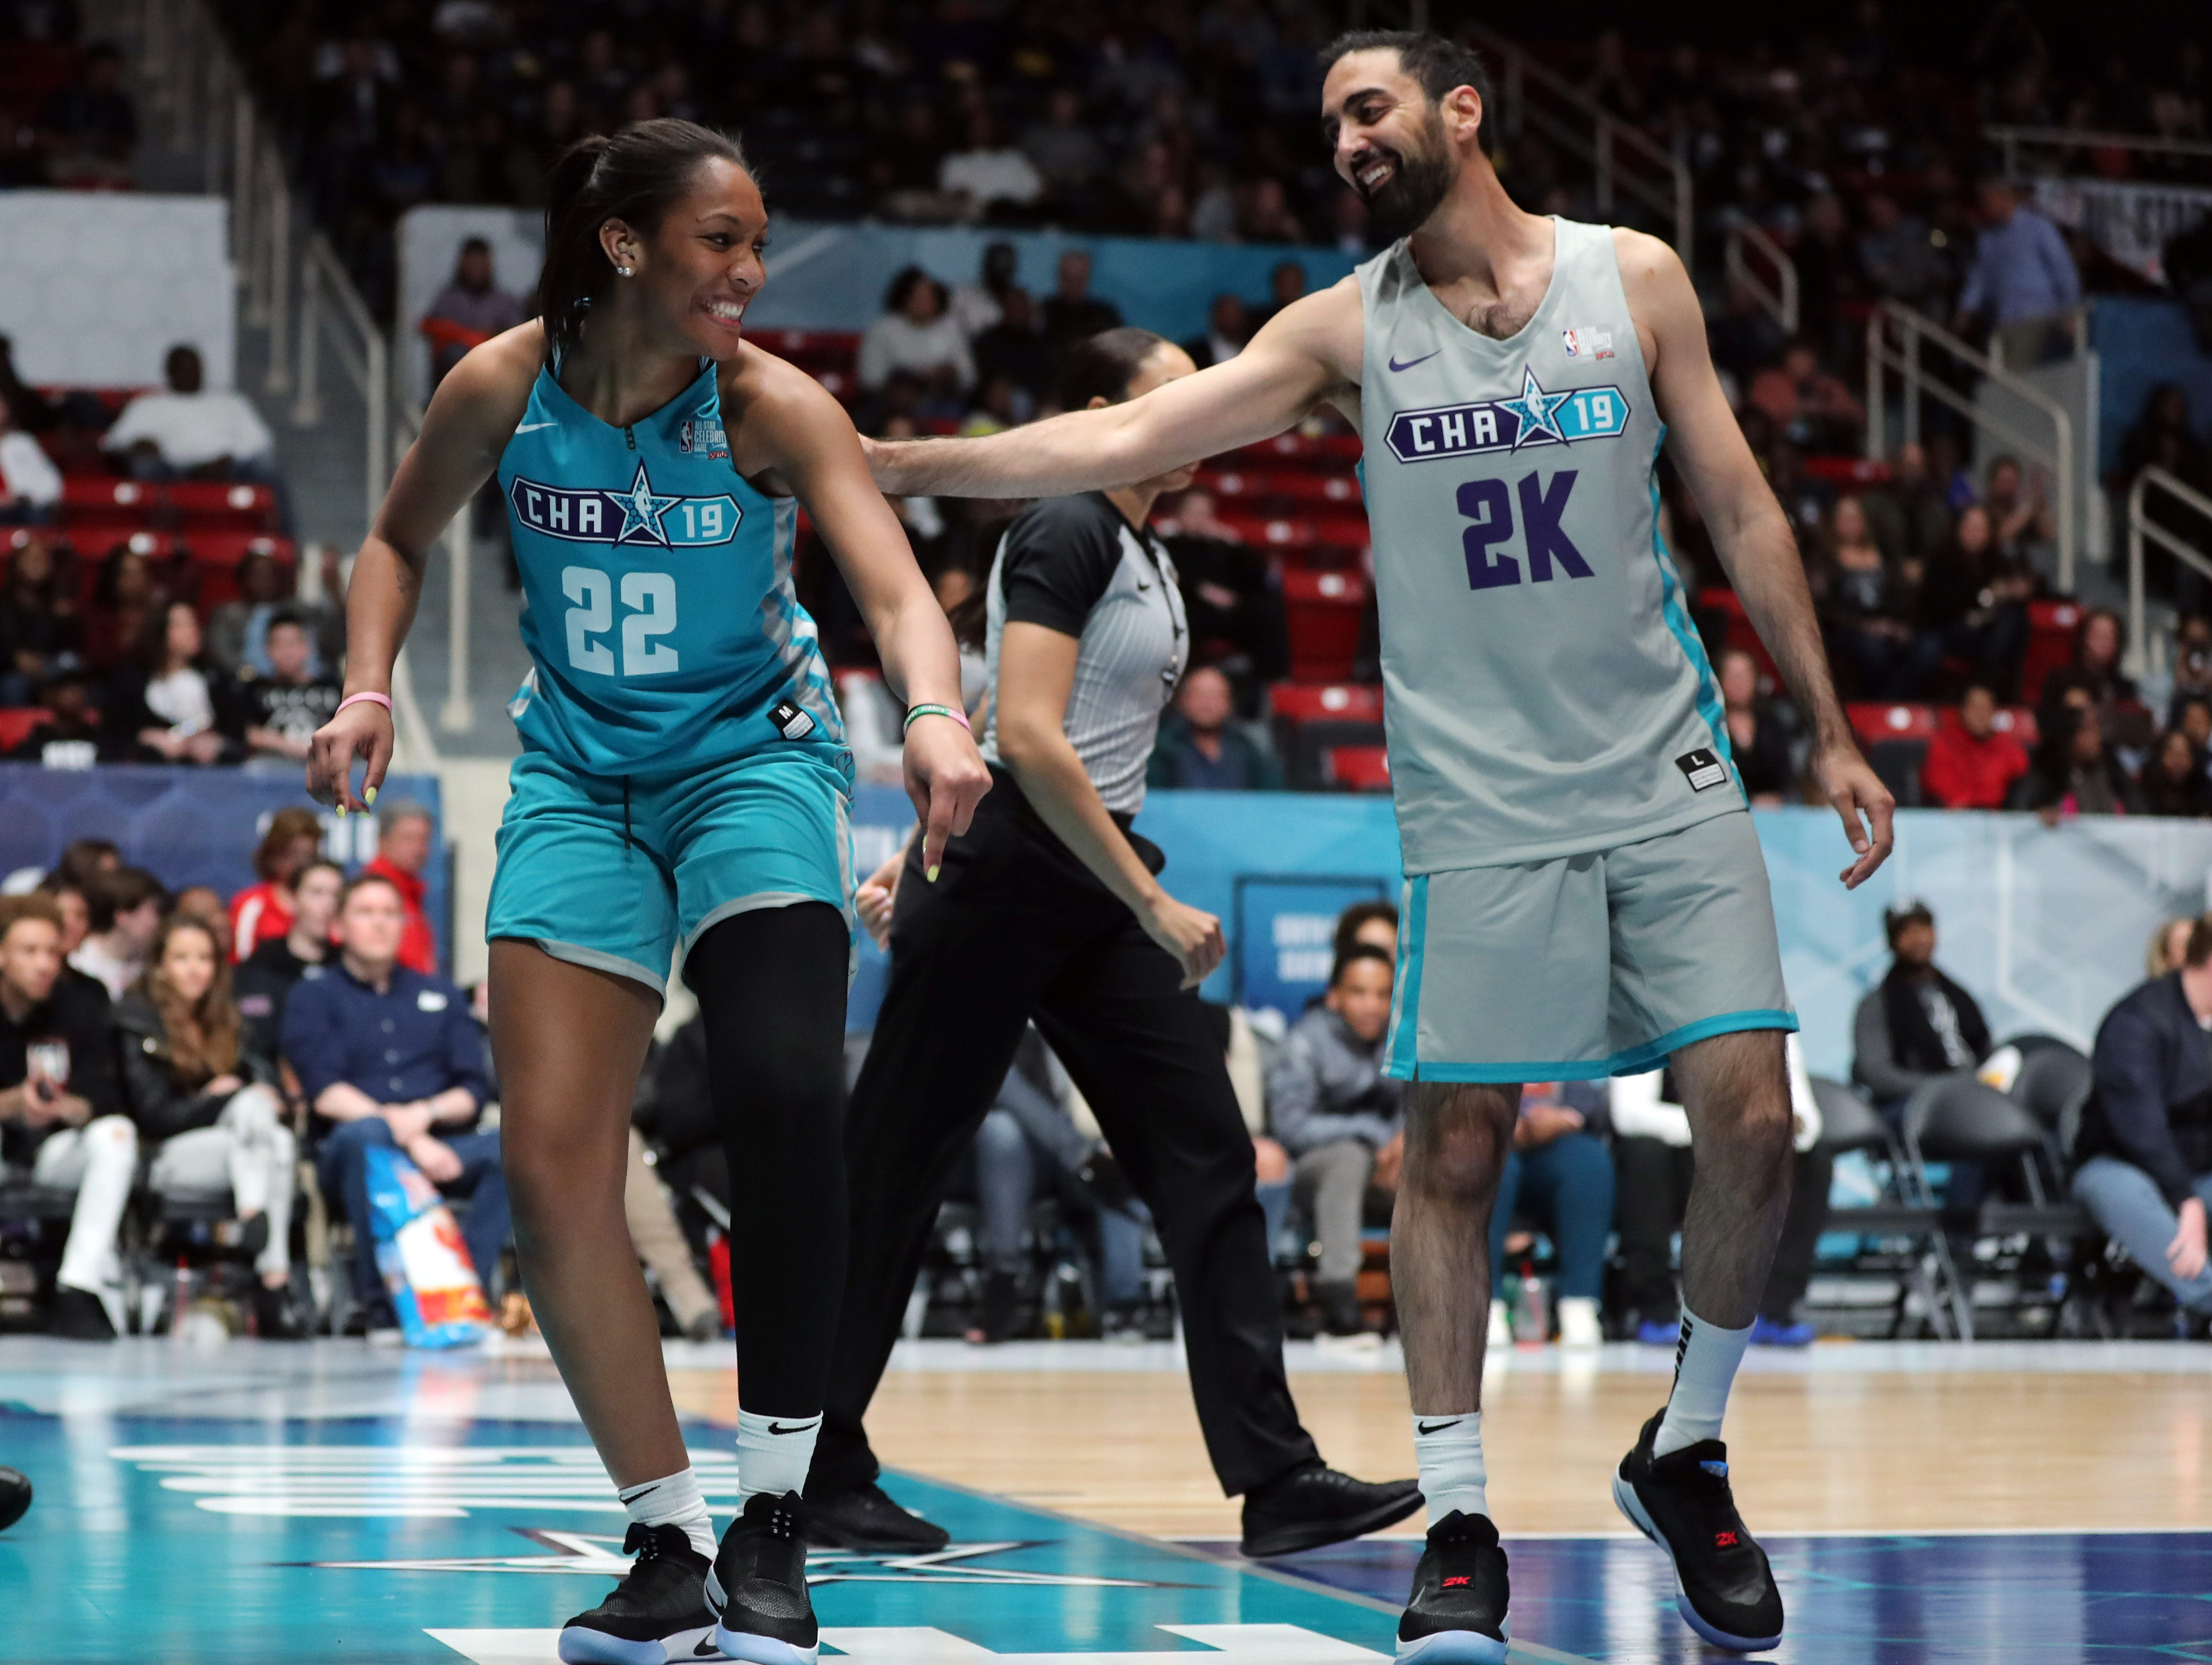 A'ja Wilson is fouled by Ronnie 2K during the third quarter of the Celebrity Game.